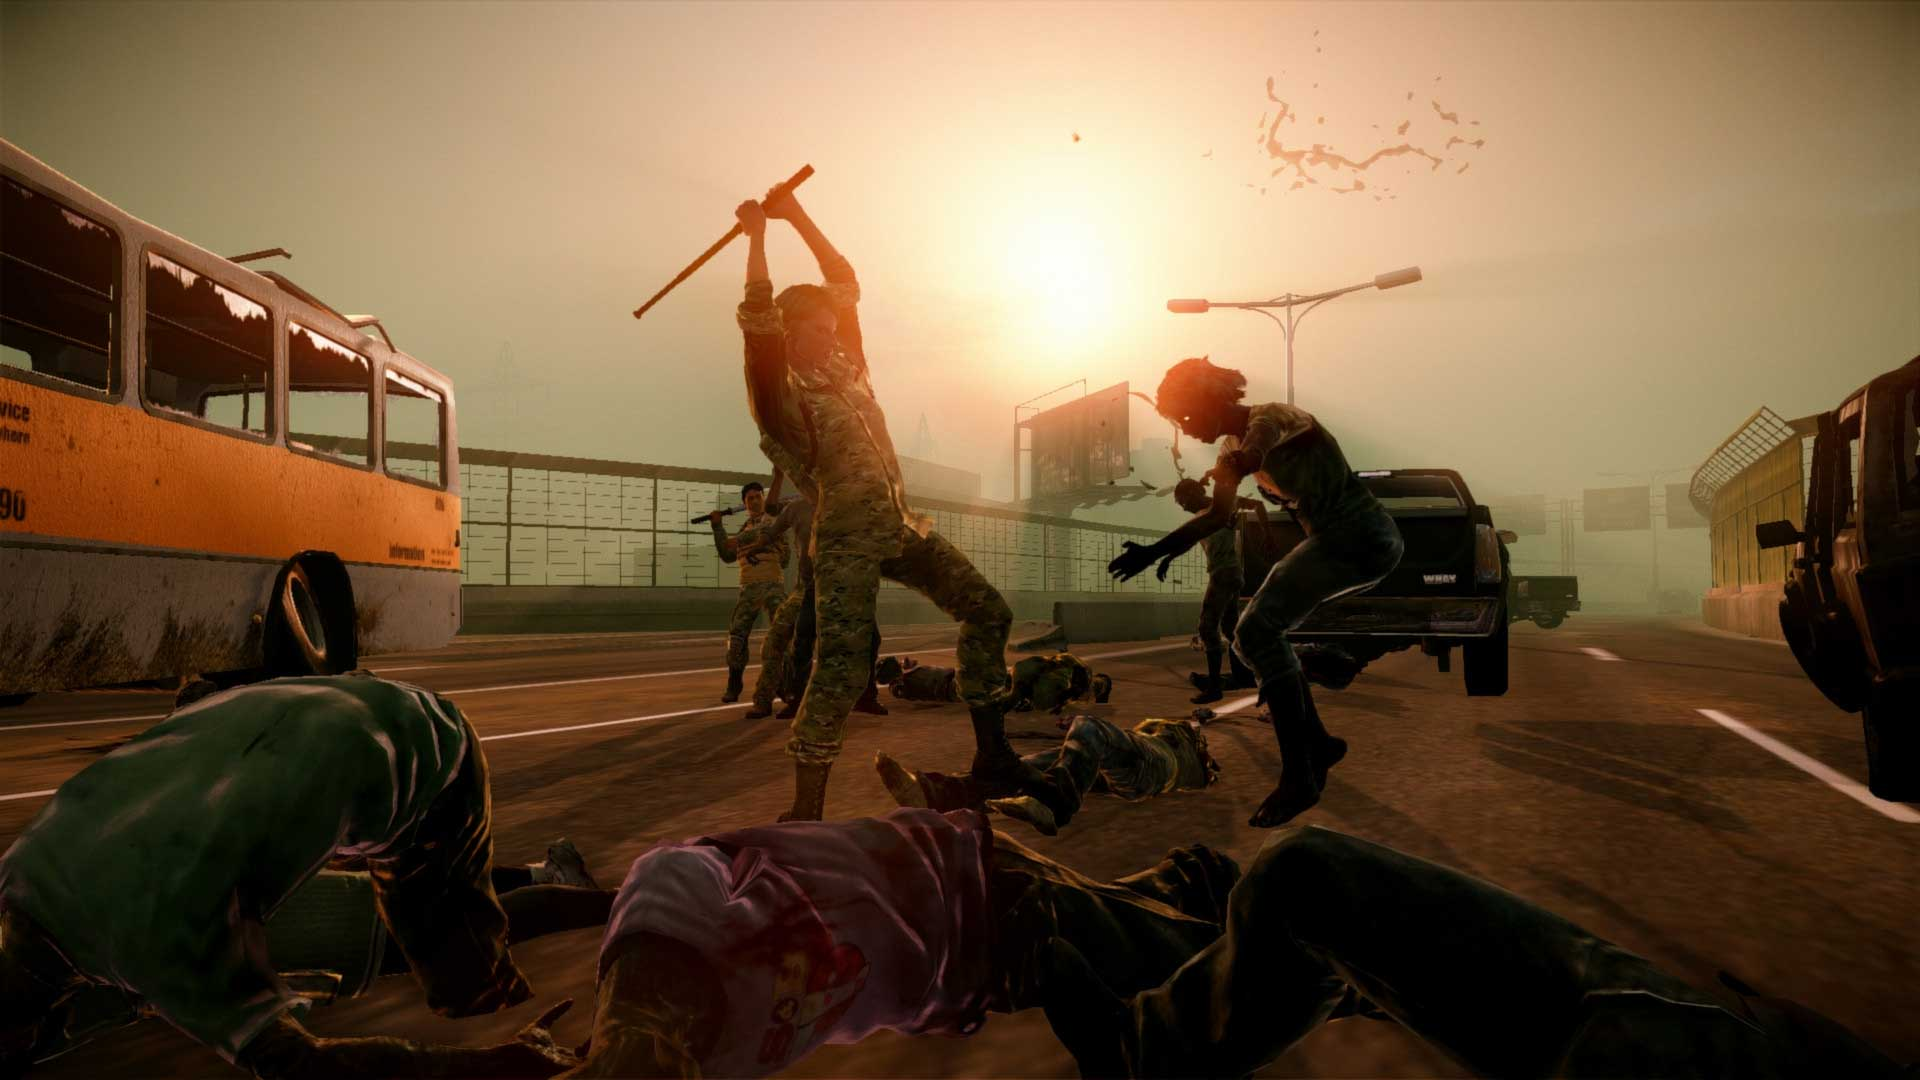 State of Decay - Lifeline Region Free (Steam Gift/Key)